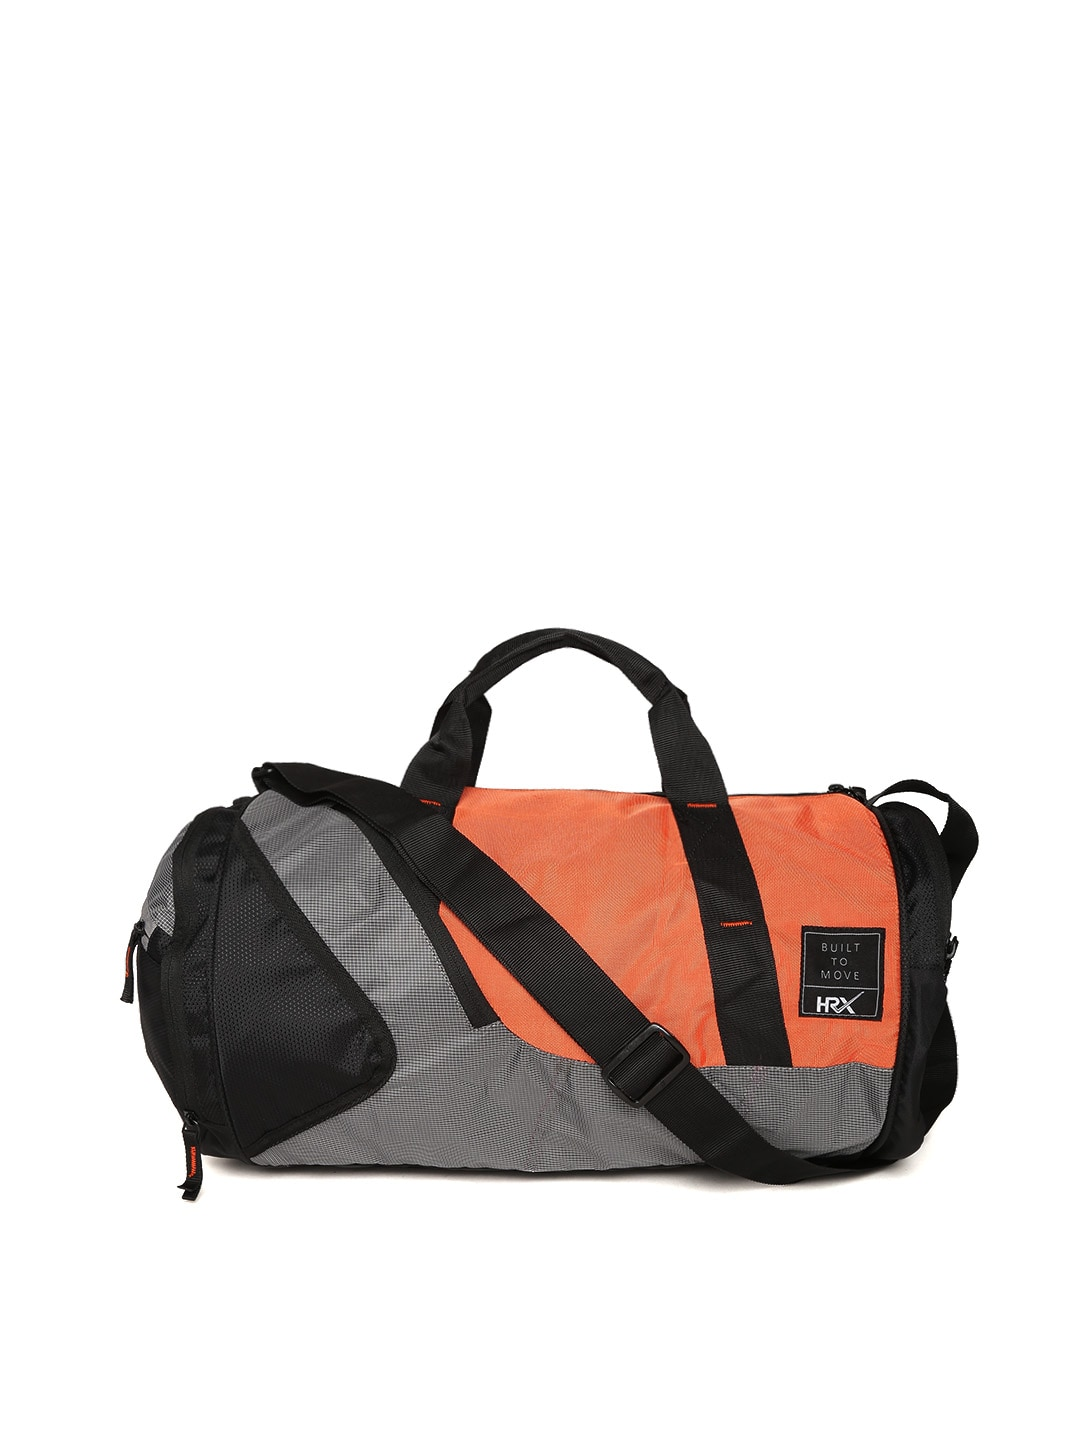 Gym Bags For Men - Buy Mens Gym Bag Online in India  089744338f773